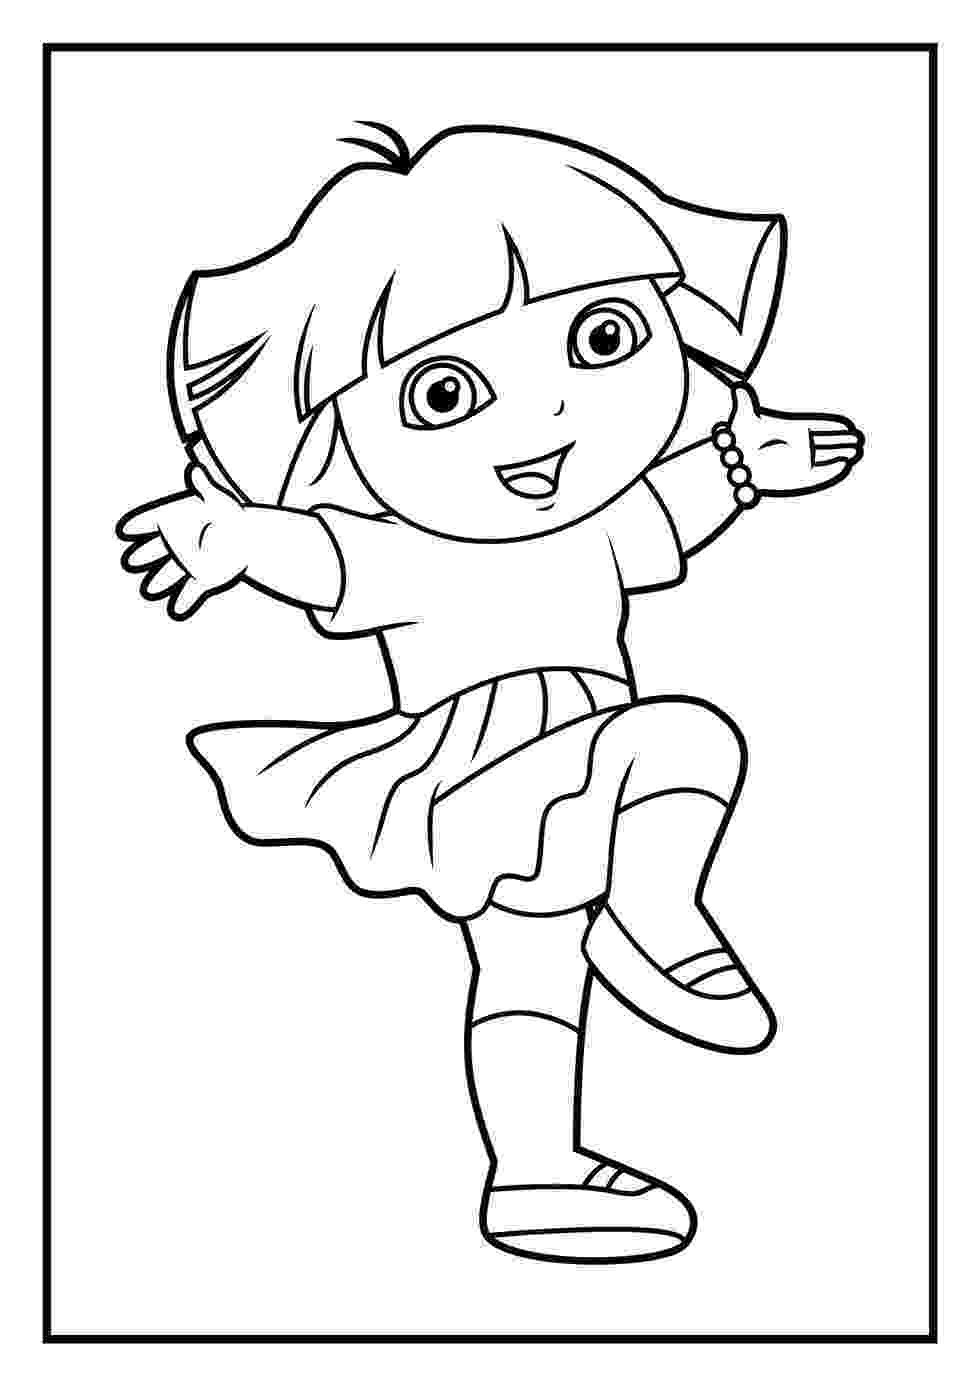 dora explorer coloring dora colouring sheets pdf printable dora and friends explorer dora coloring